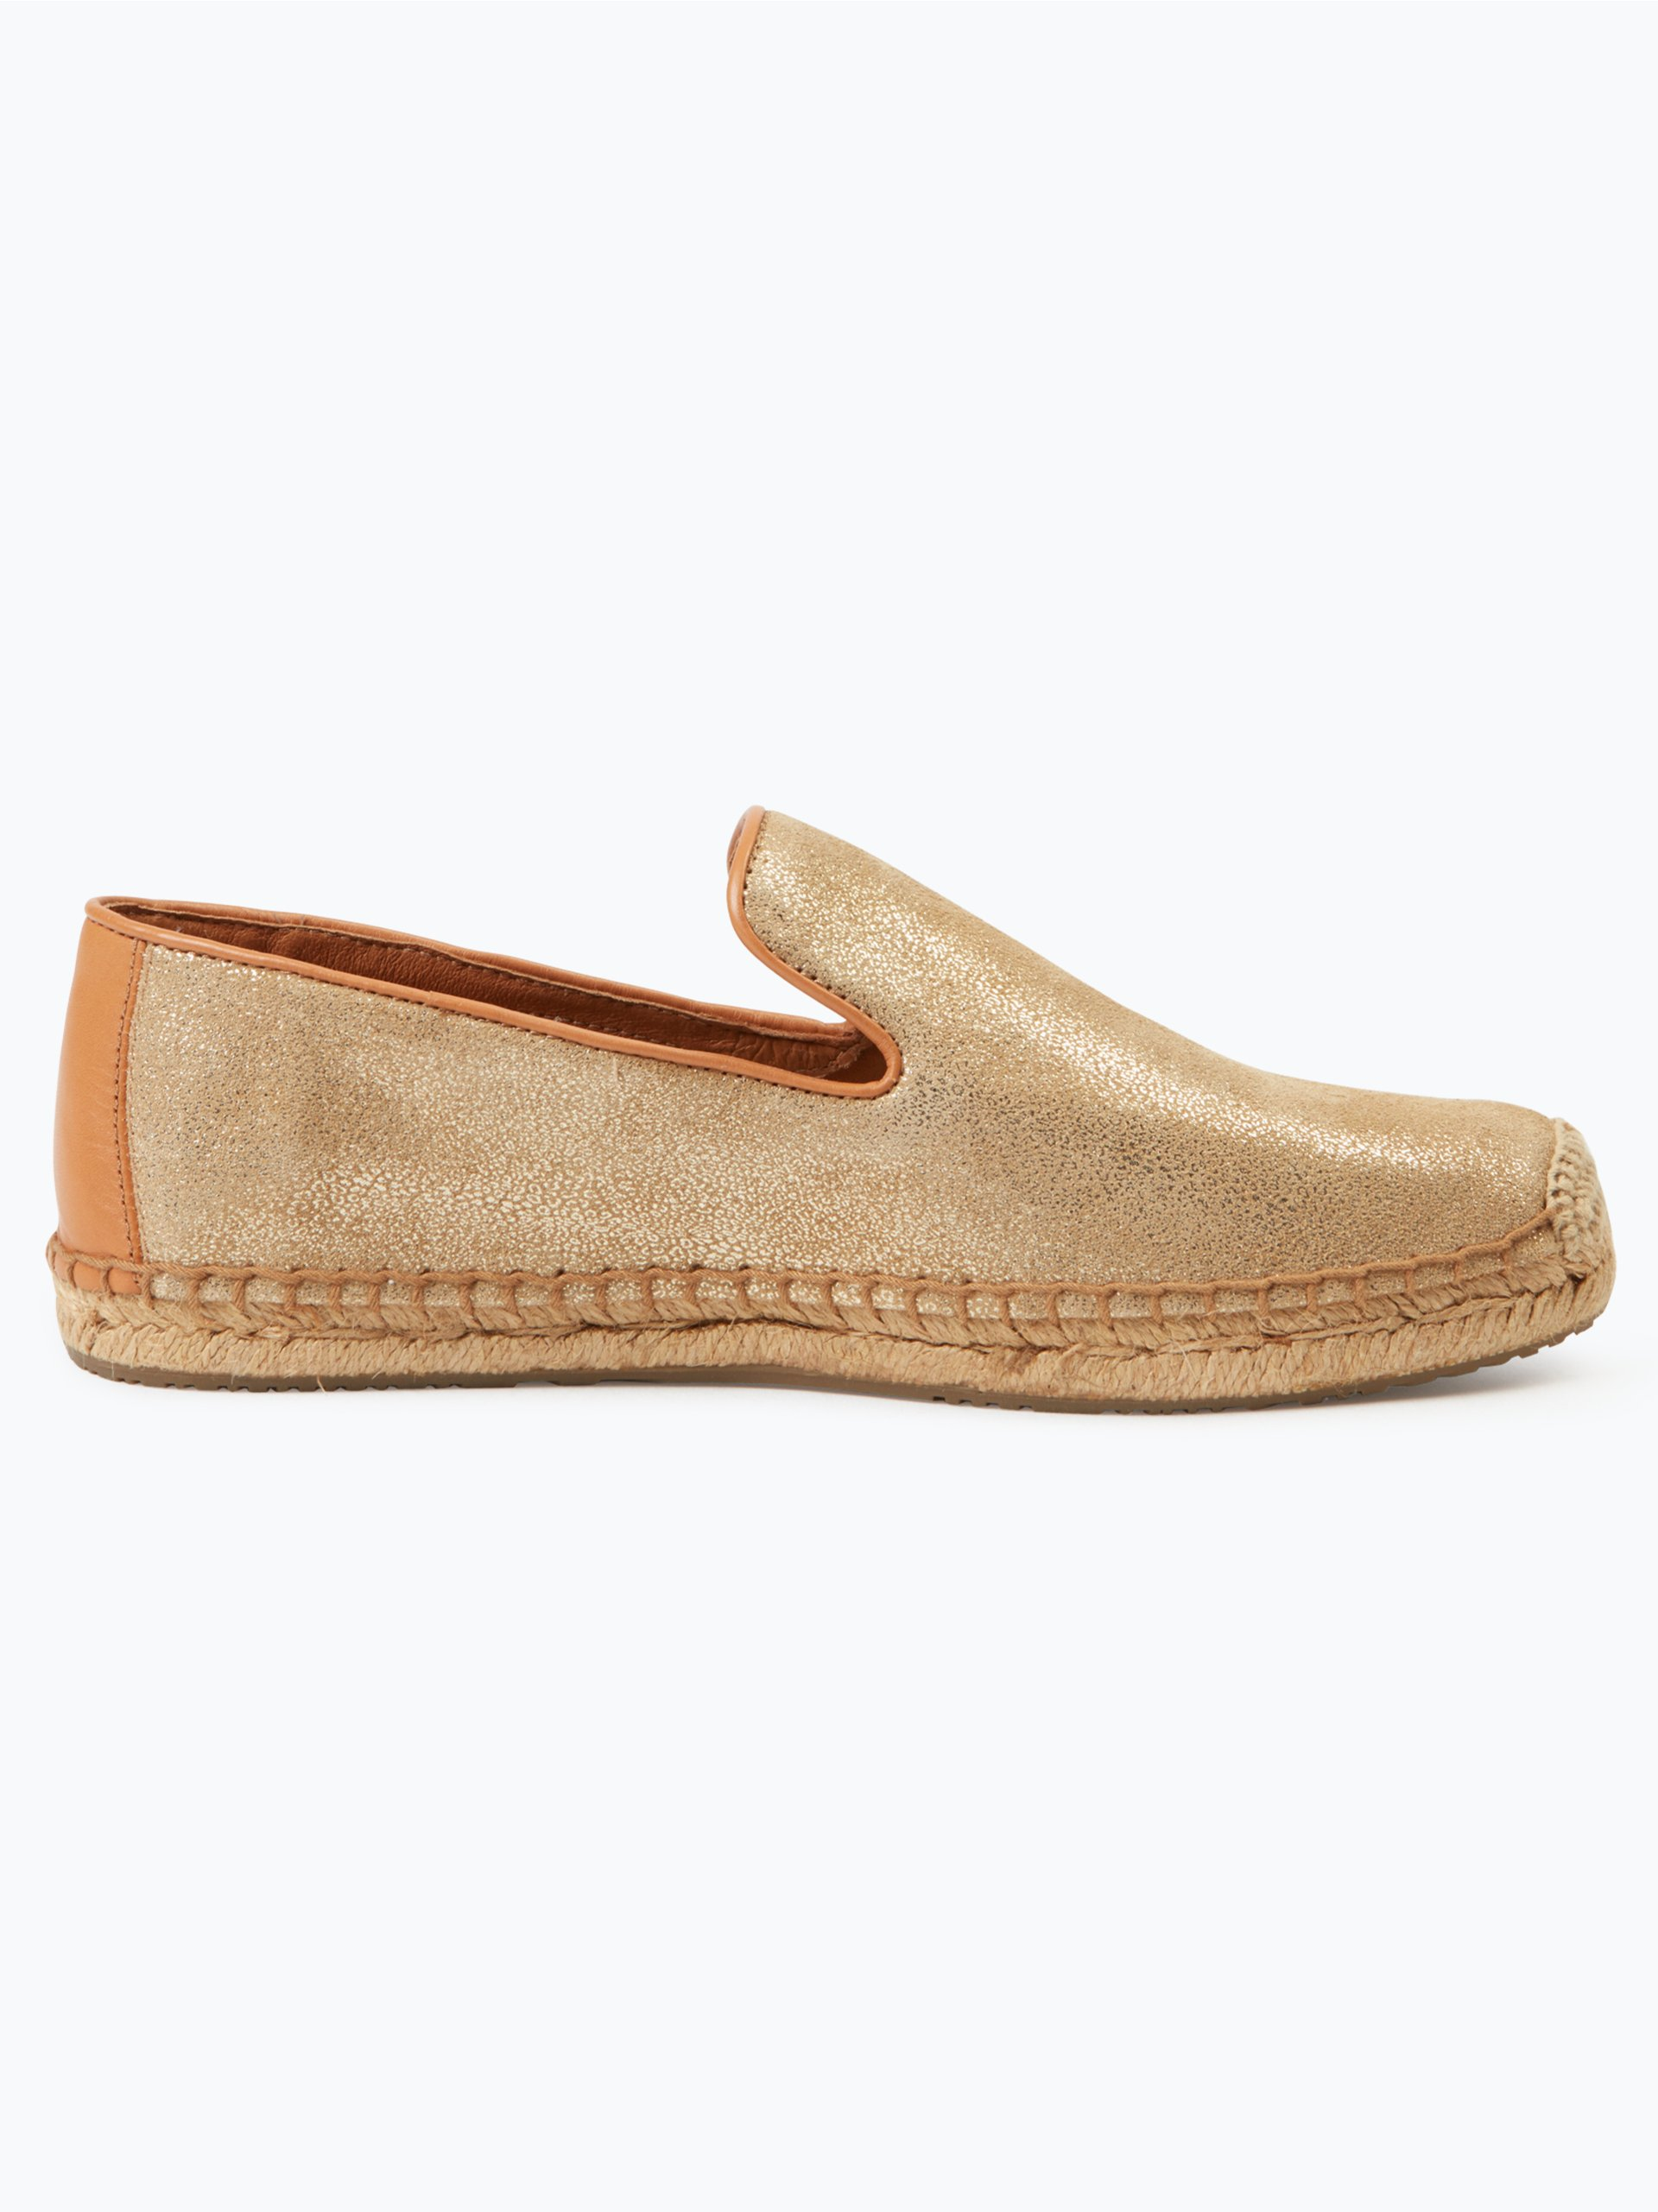 ugg damen espadrilles aus leder w sandrinne ii gold uni online kaufen vangraaf com. Black Bedroom Furniture Sets. Home Design Ideas